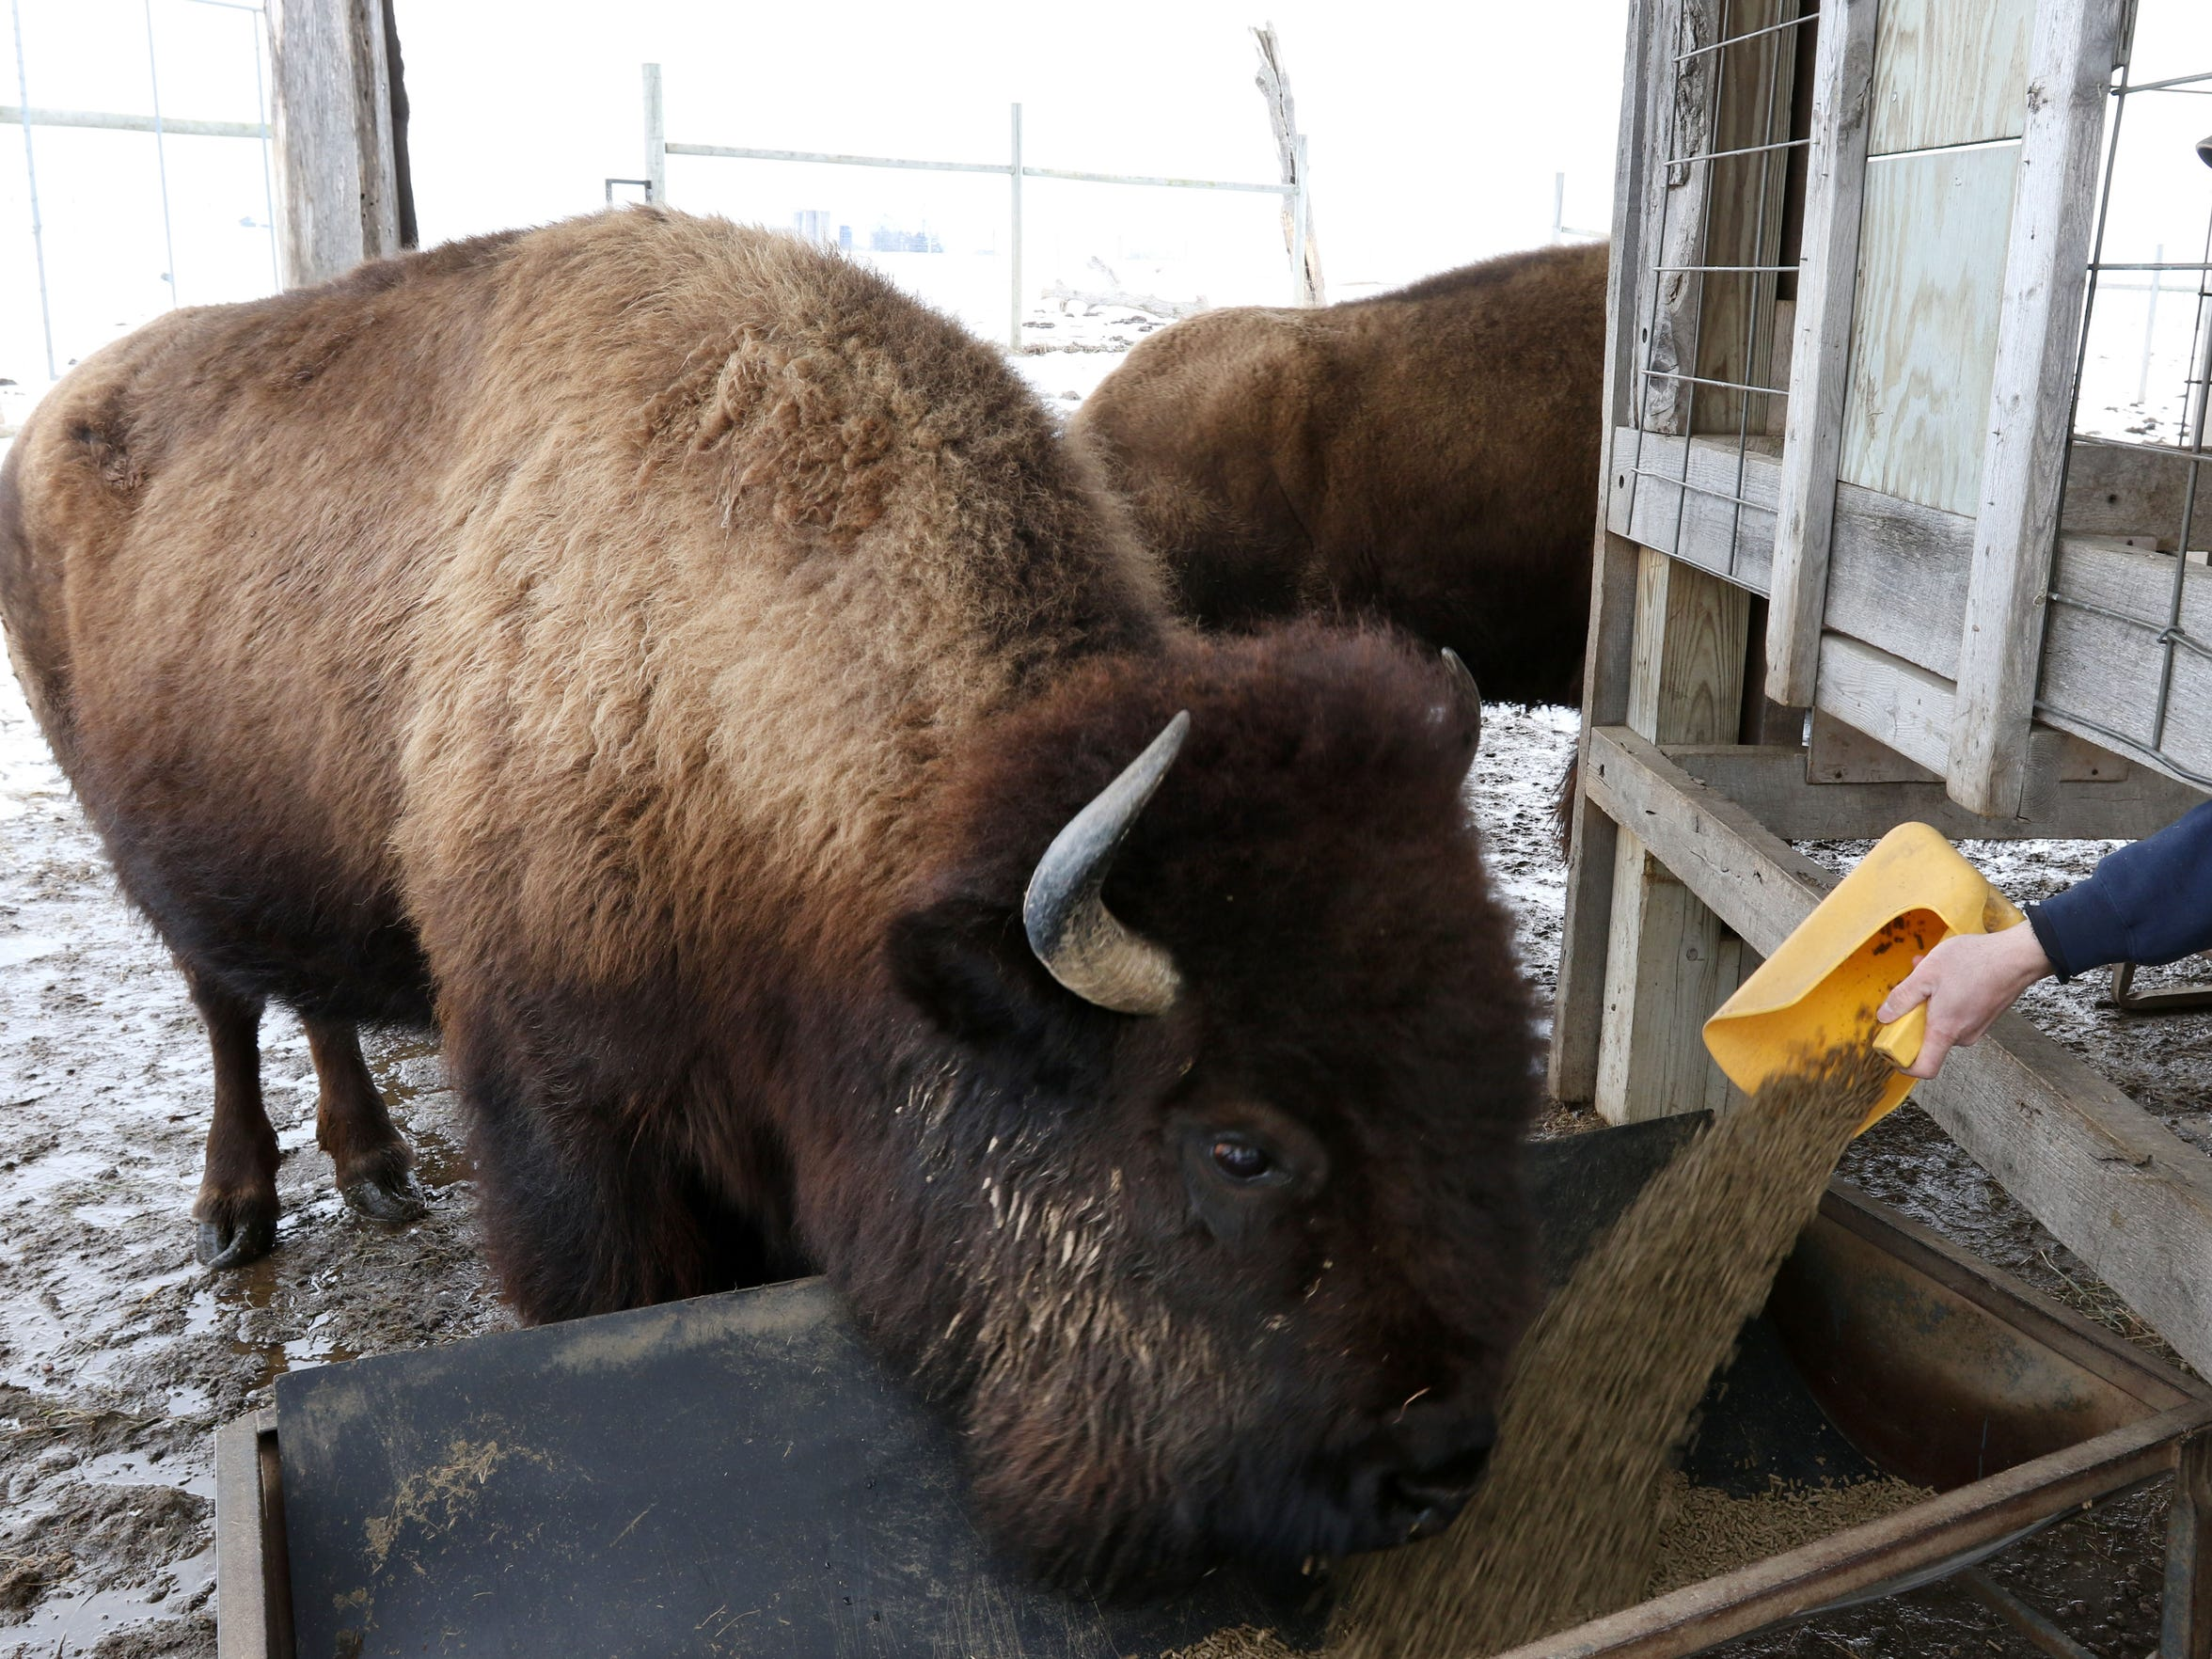 A bison eats while Steve Burns, zookeeper at the Wildwood